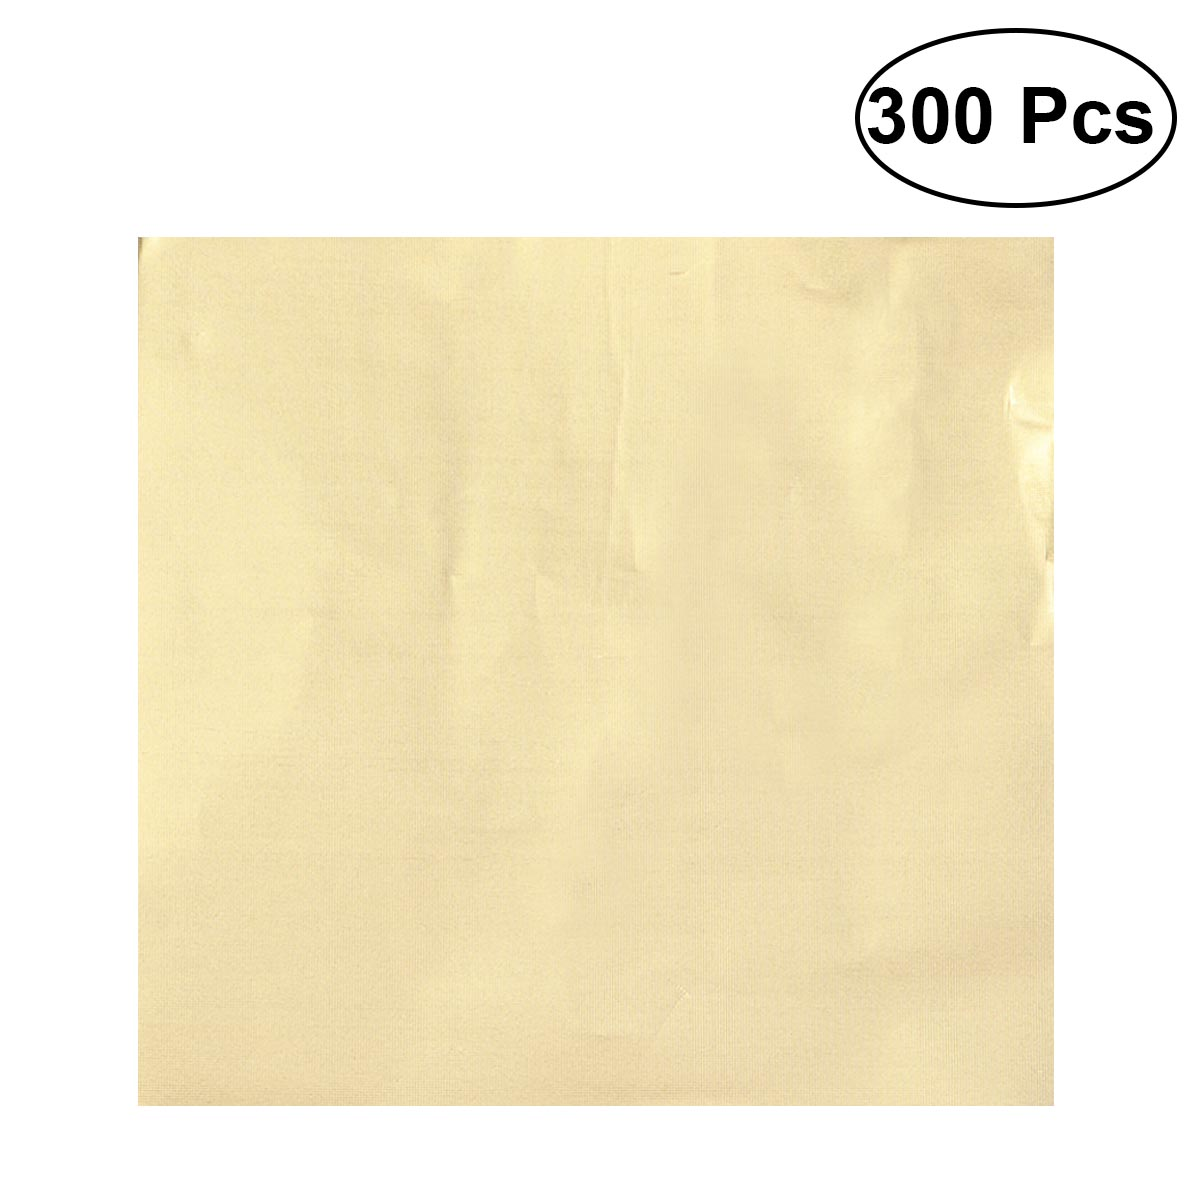 300pcs Food Grade Nontoxic Practical Gold Gift Wrap Storage Paper Aluminum Foil Embossing Paper For Chocolate Candy Sweetmeat